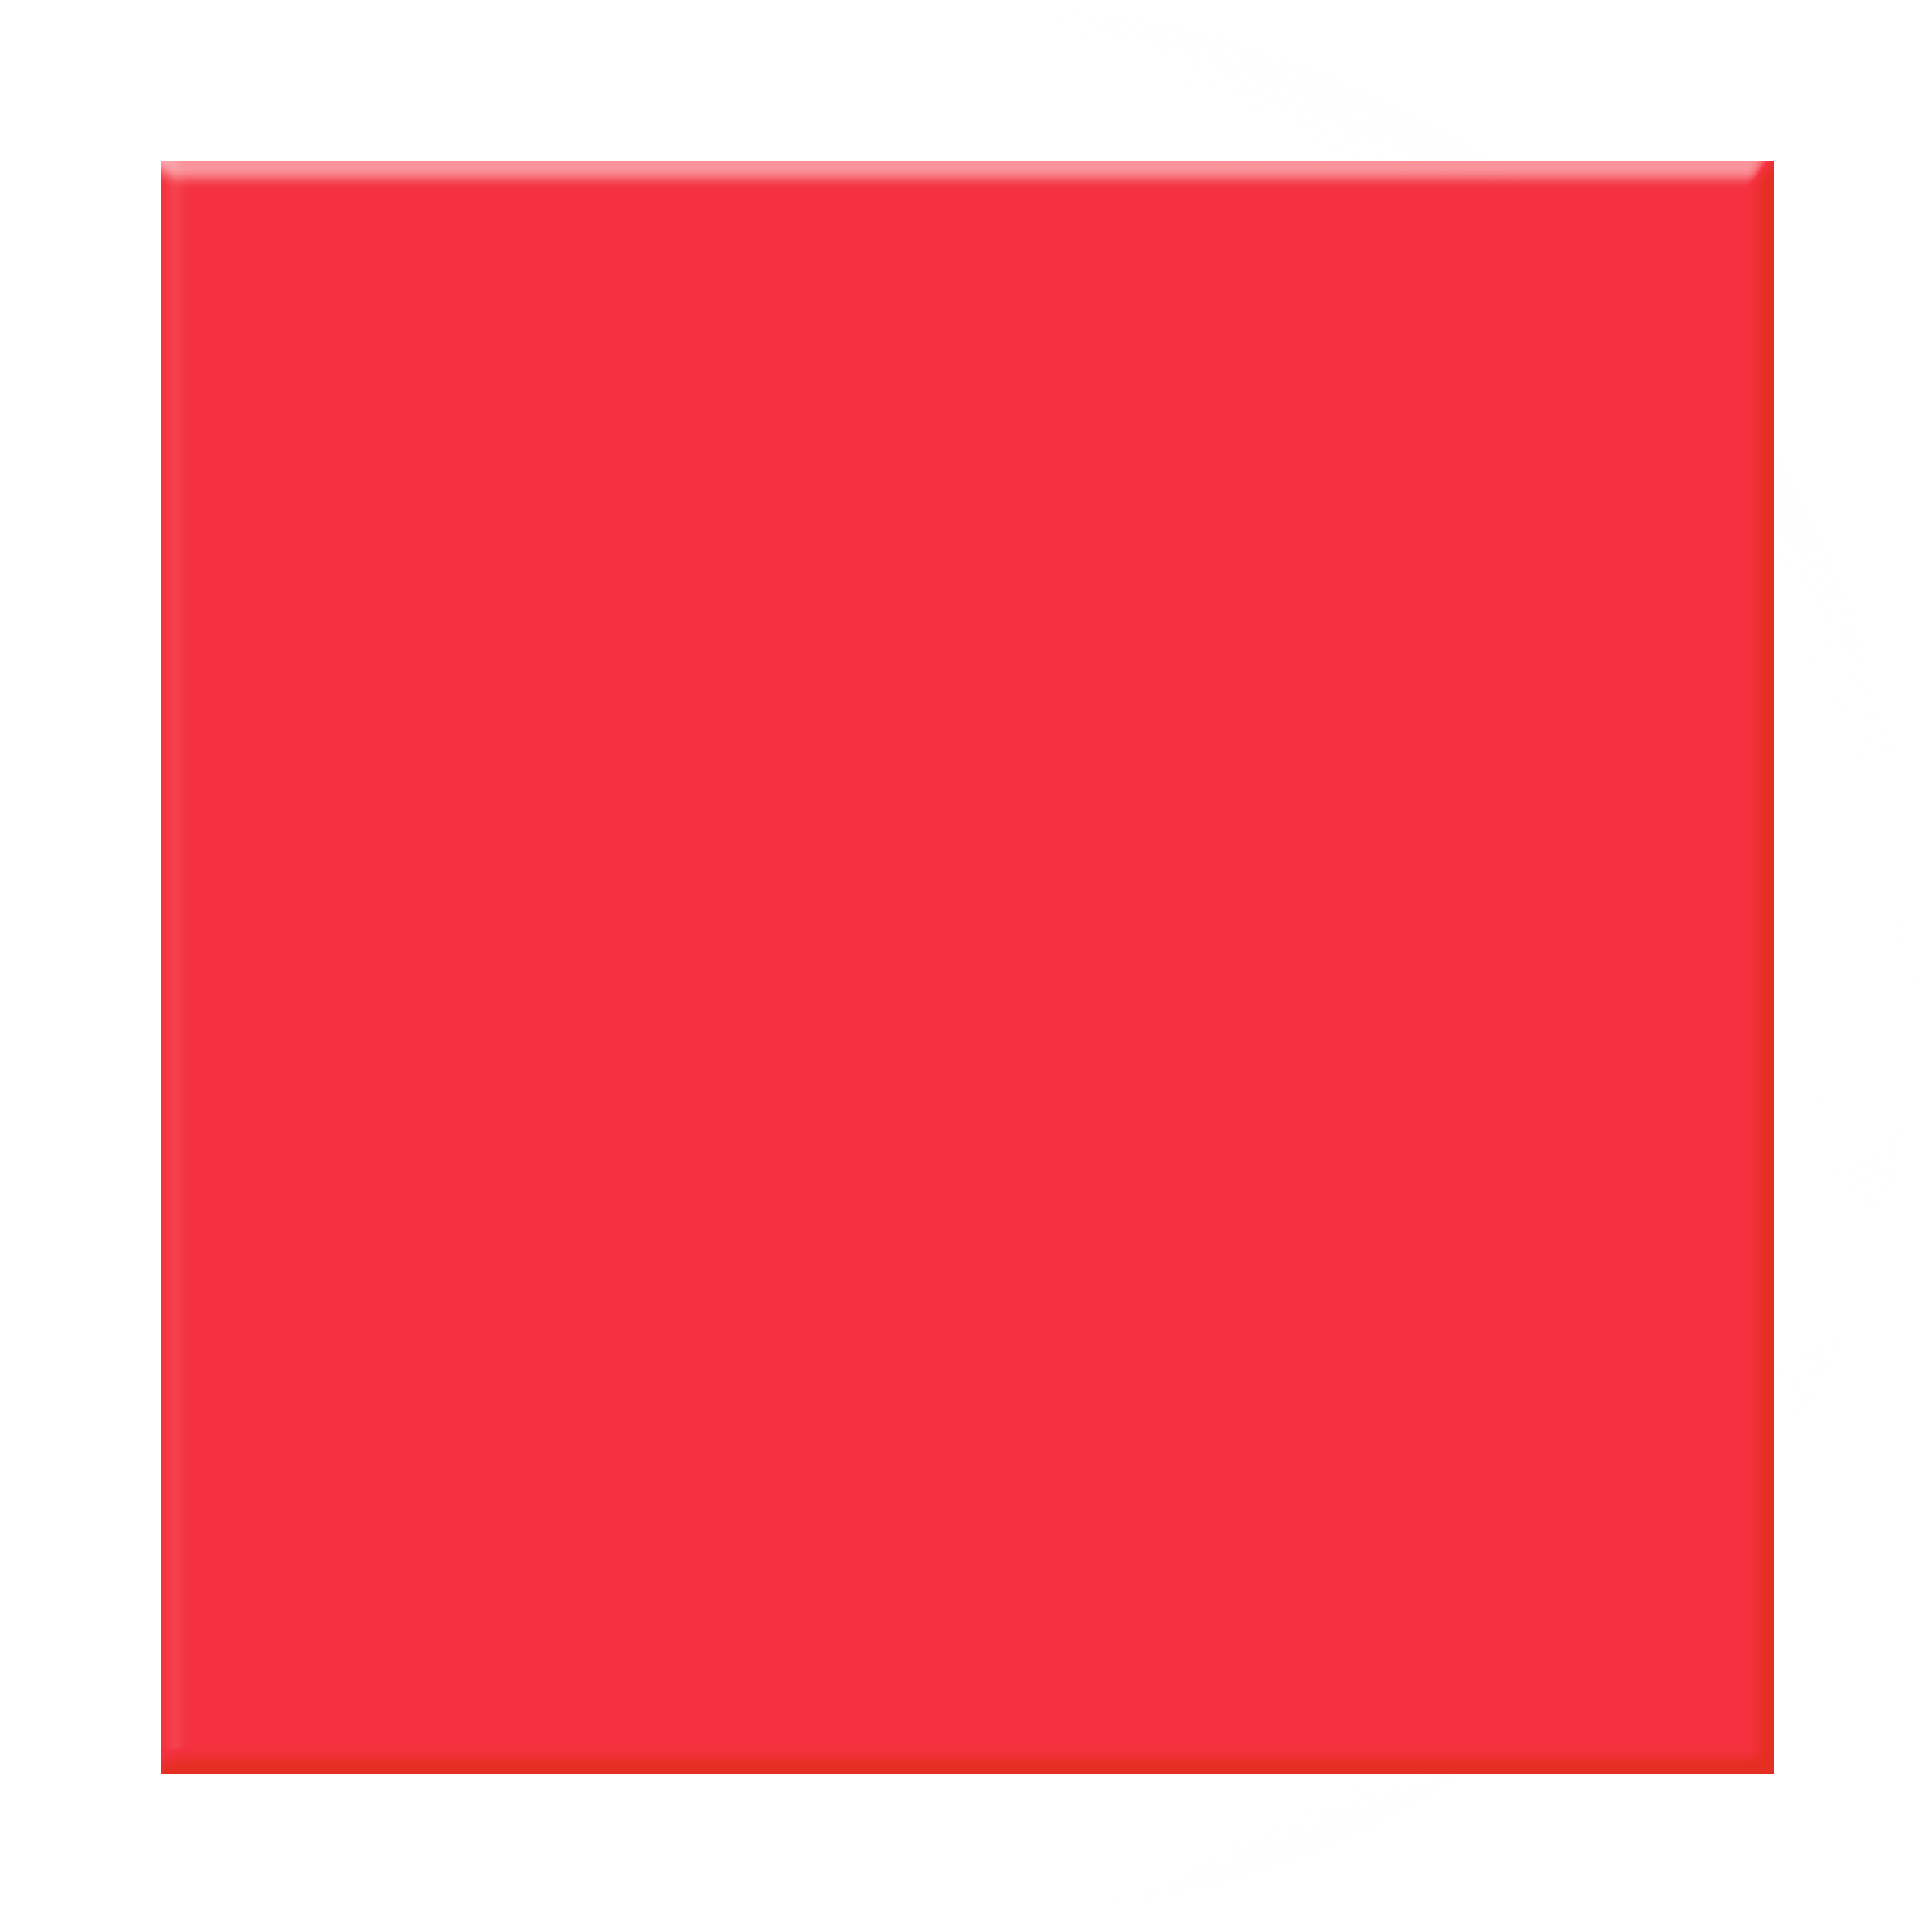 Red Square Clipart.